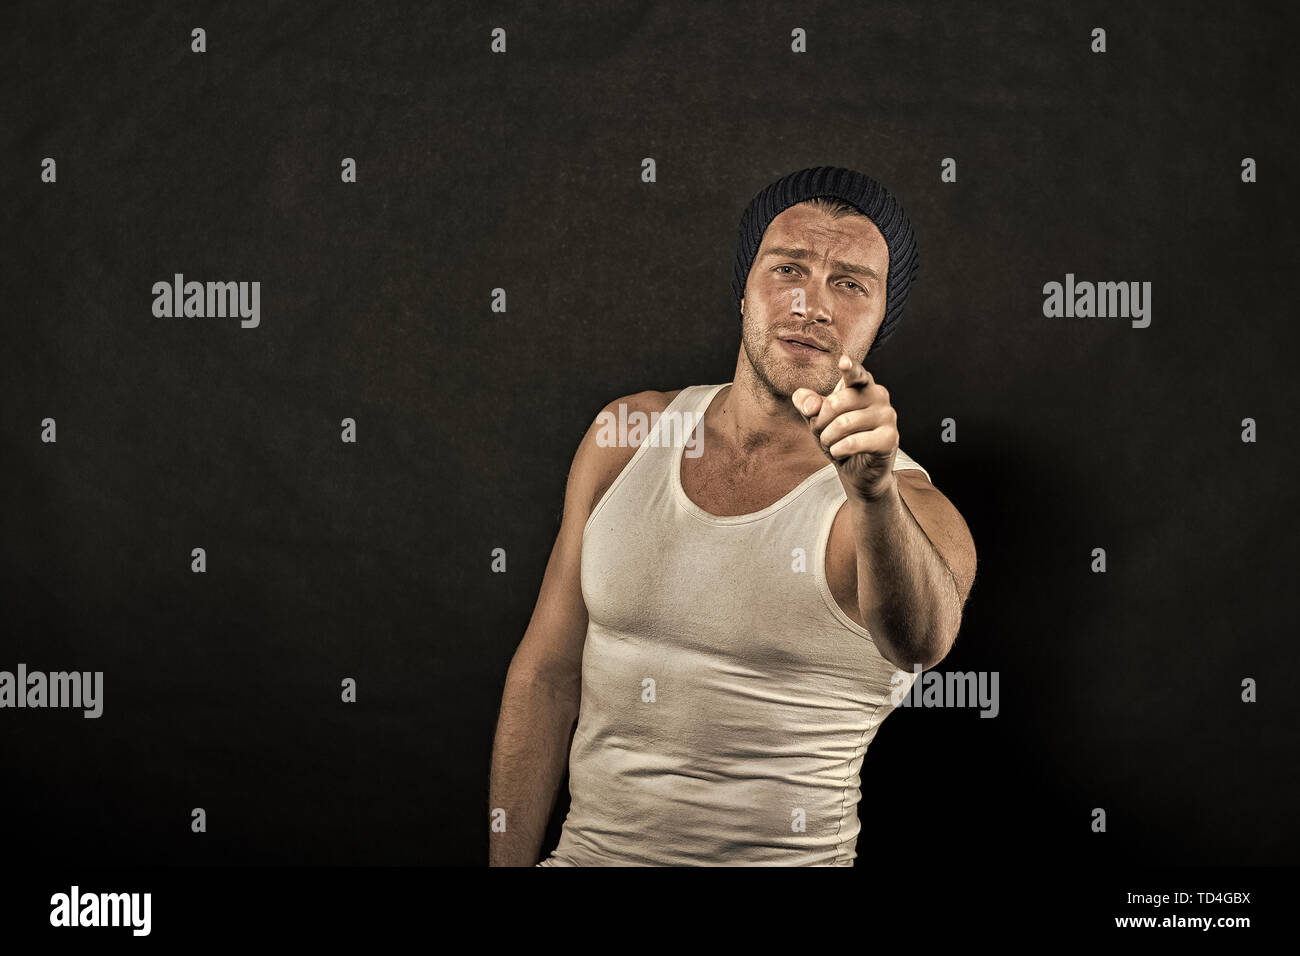 Man point finger on dark background. Macho in trendy vest and hat. Athlete with bristle on serious face. Sport and fitness. Fashion style and trend, vintage filter, copy space. - Stock Image